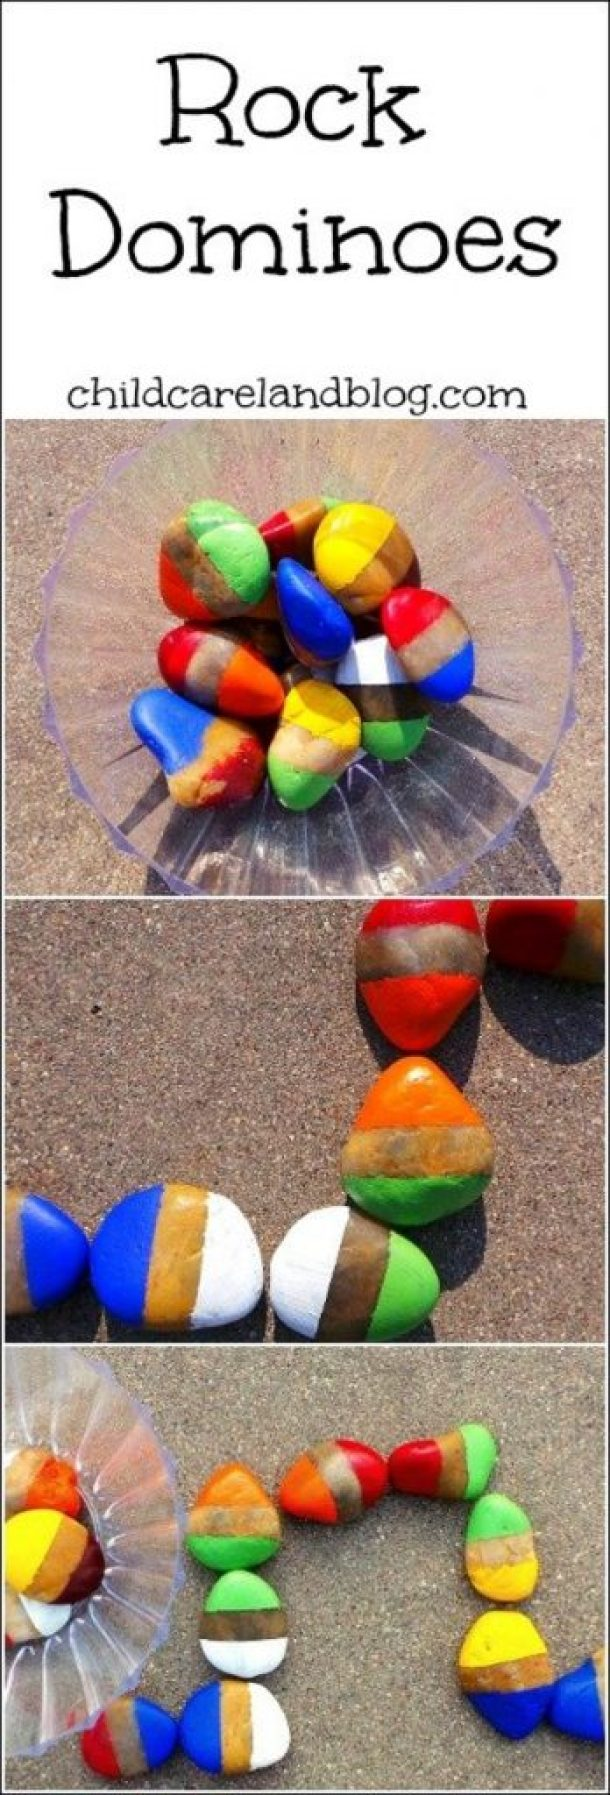 rock dominoes by childcareland blog